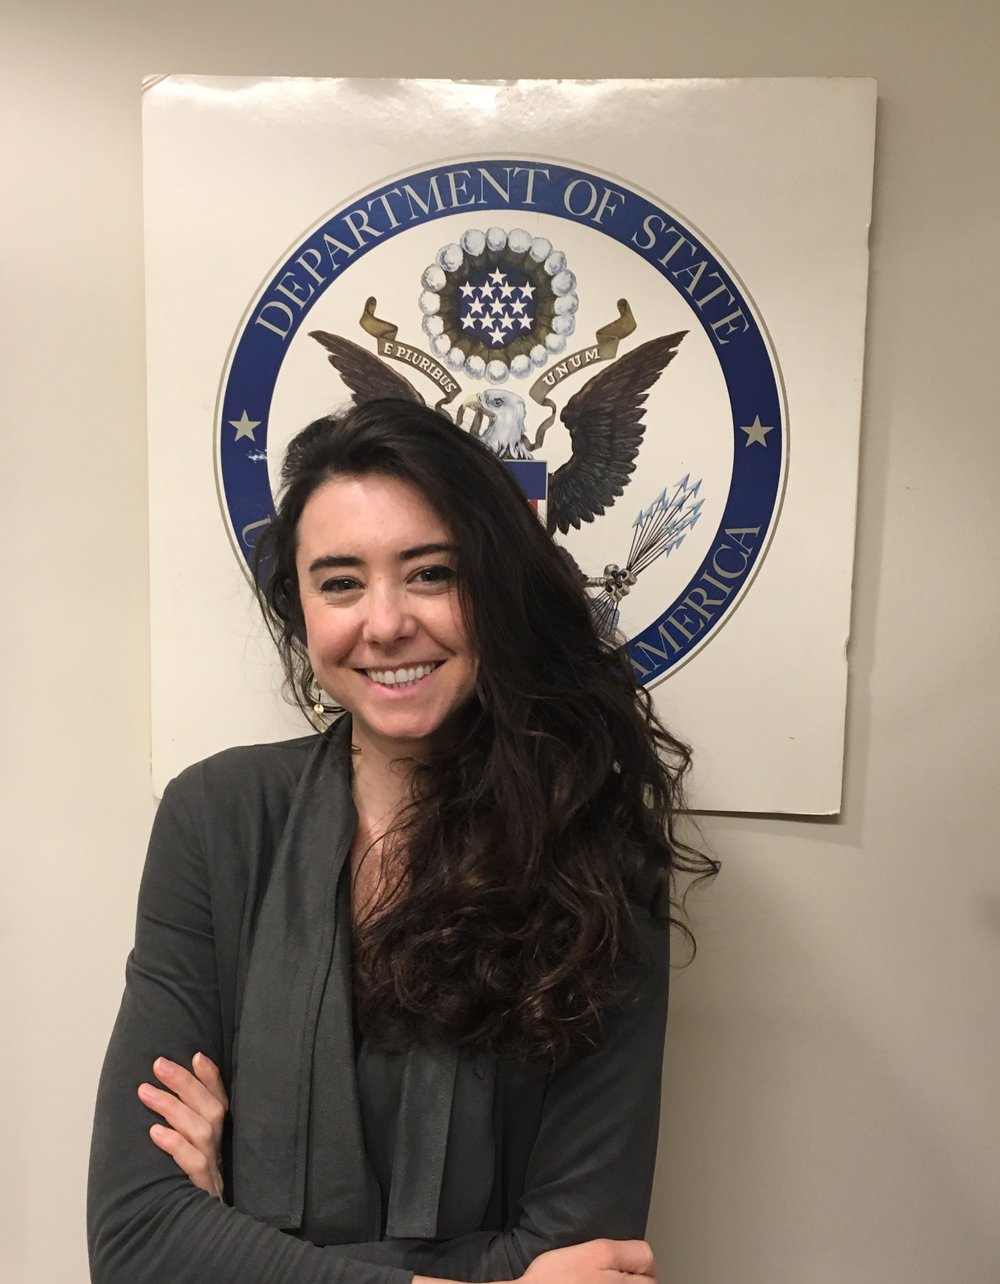 "Rachel RUBIN: pUBLIC dIPLOMACY OFFICEr, U.S. STATE DEPARTMENT   What Owning It Means to Her:  ""'Owning it' means succeeding at a seemingly insurmountable challenge, and knowing I can do it again.  'Owning it' also means having the right attitude and the energy to meet challenges as they come. """